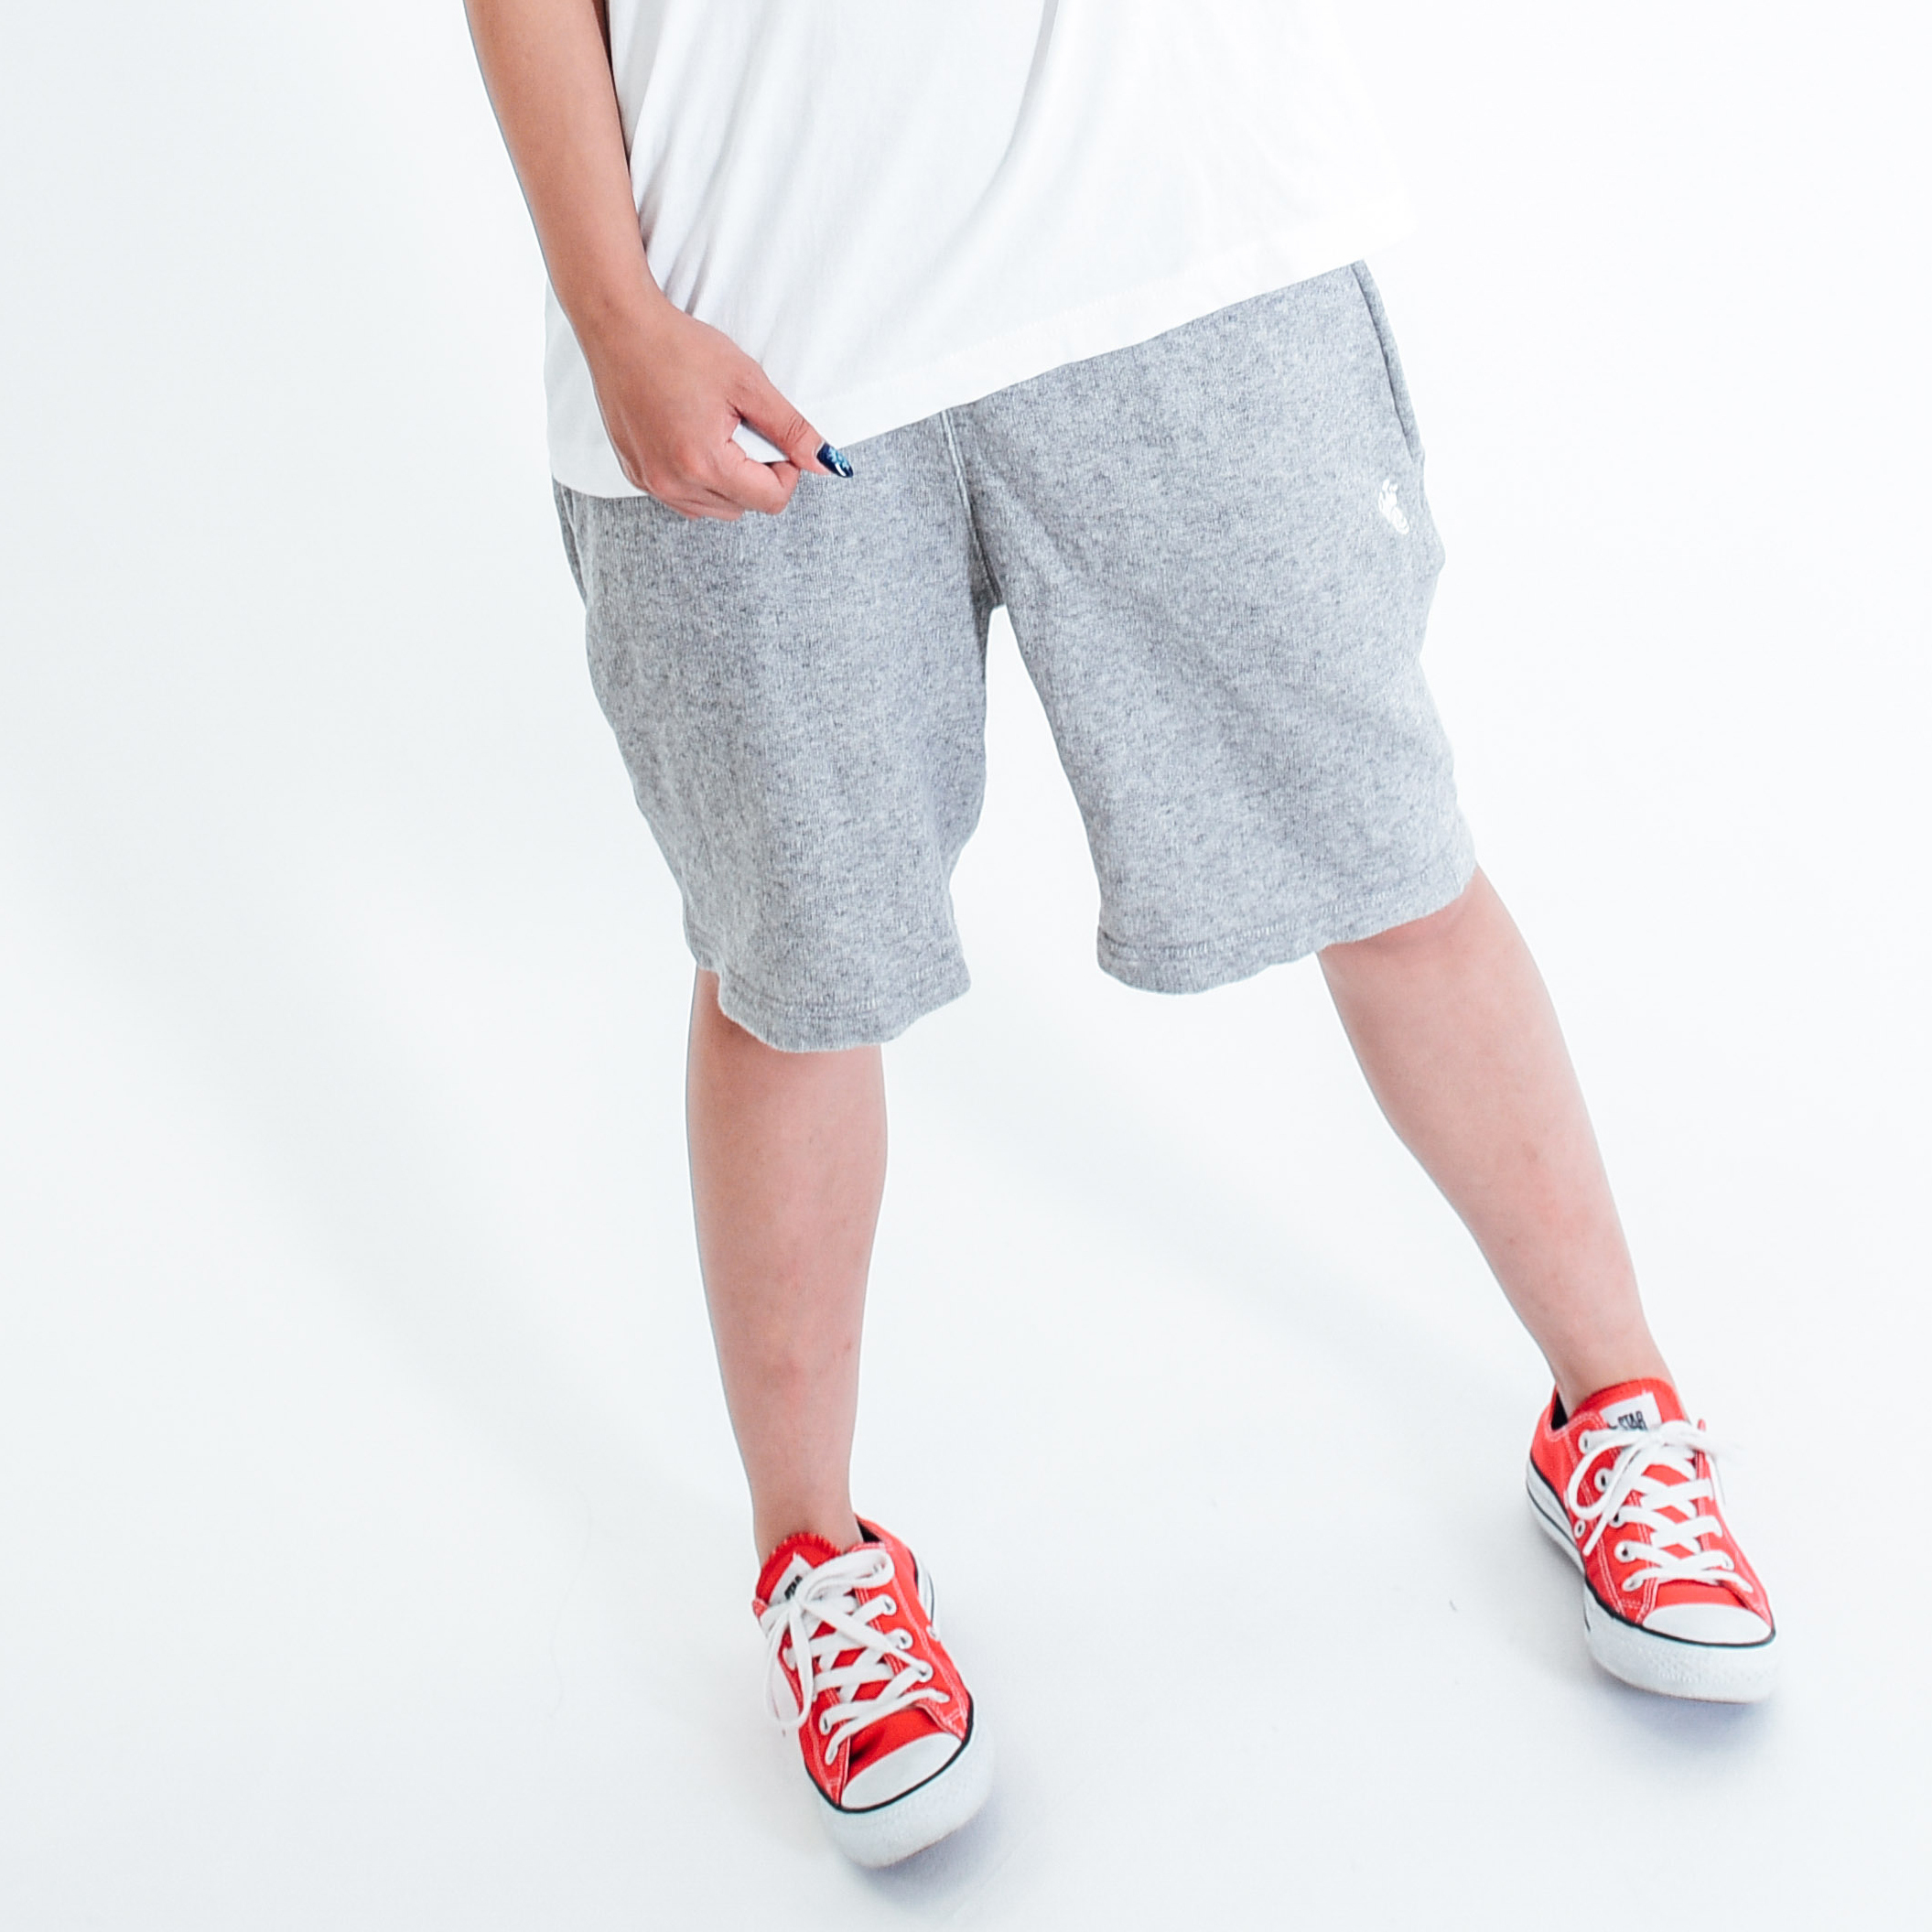 【20% OFF】King Logo Sweat Short Pant / Grey - 画像1